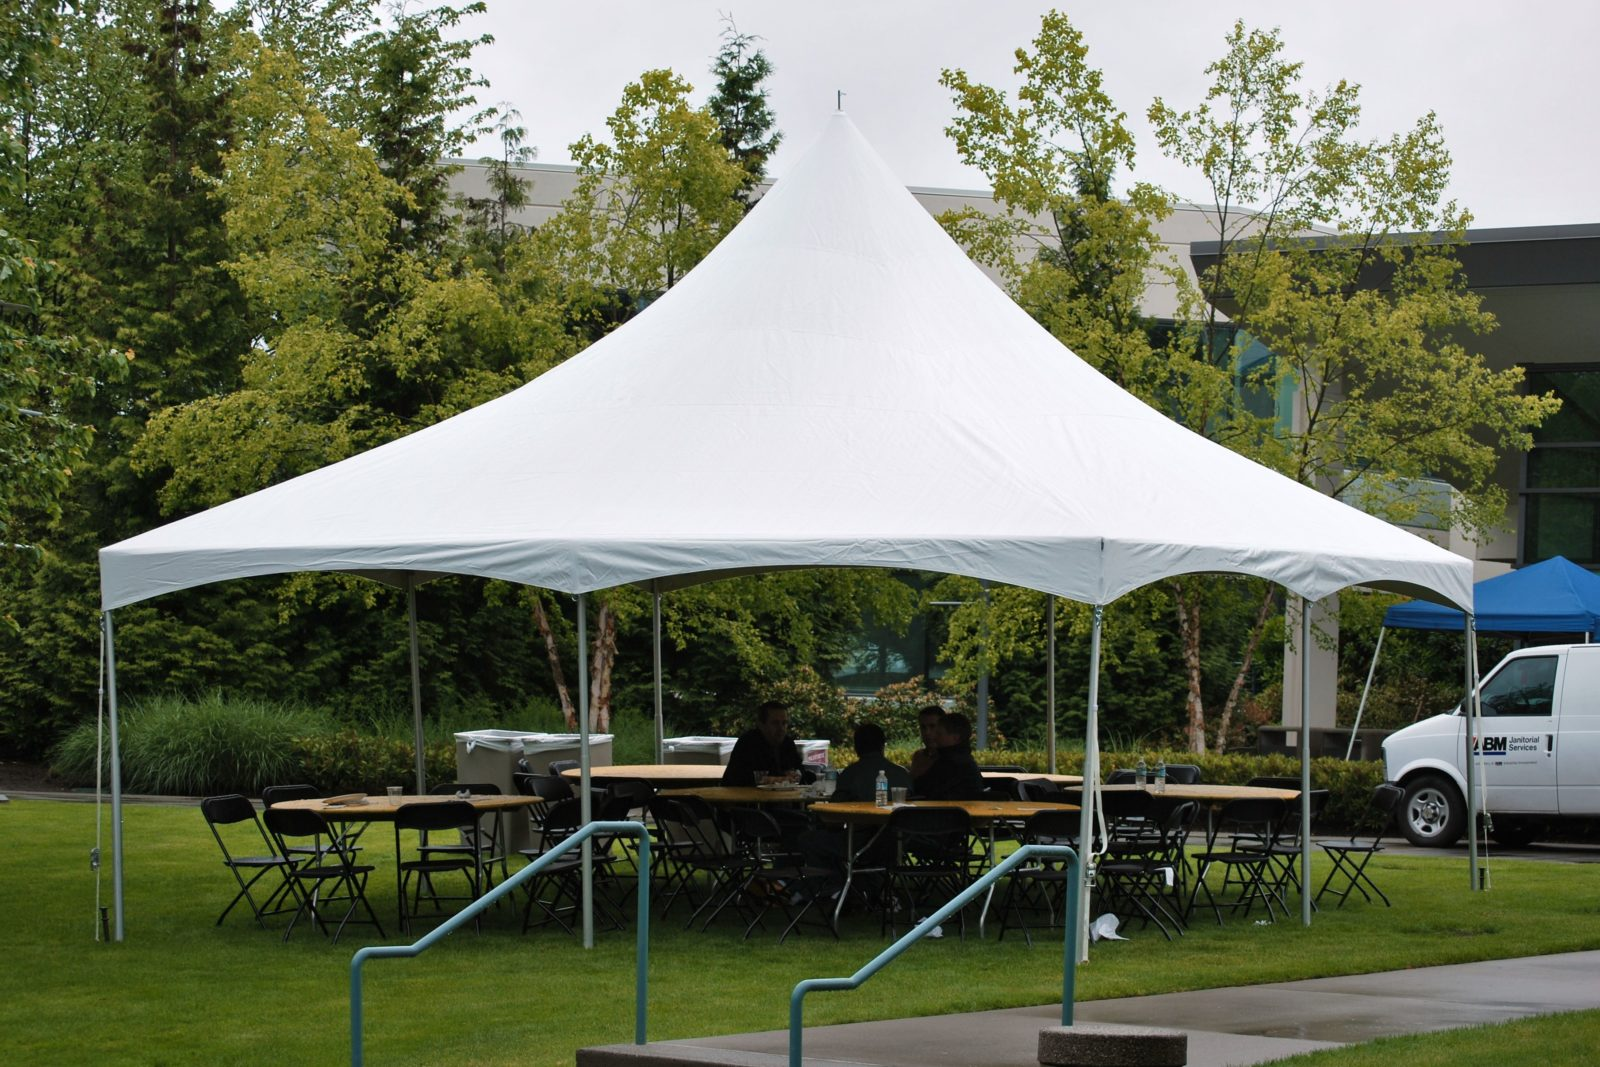 High Peak Festival Tent Rental National Event Pros